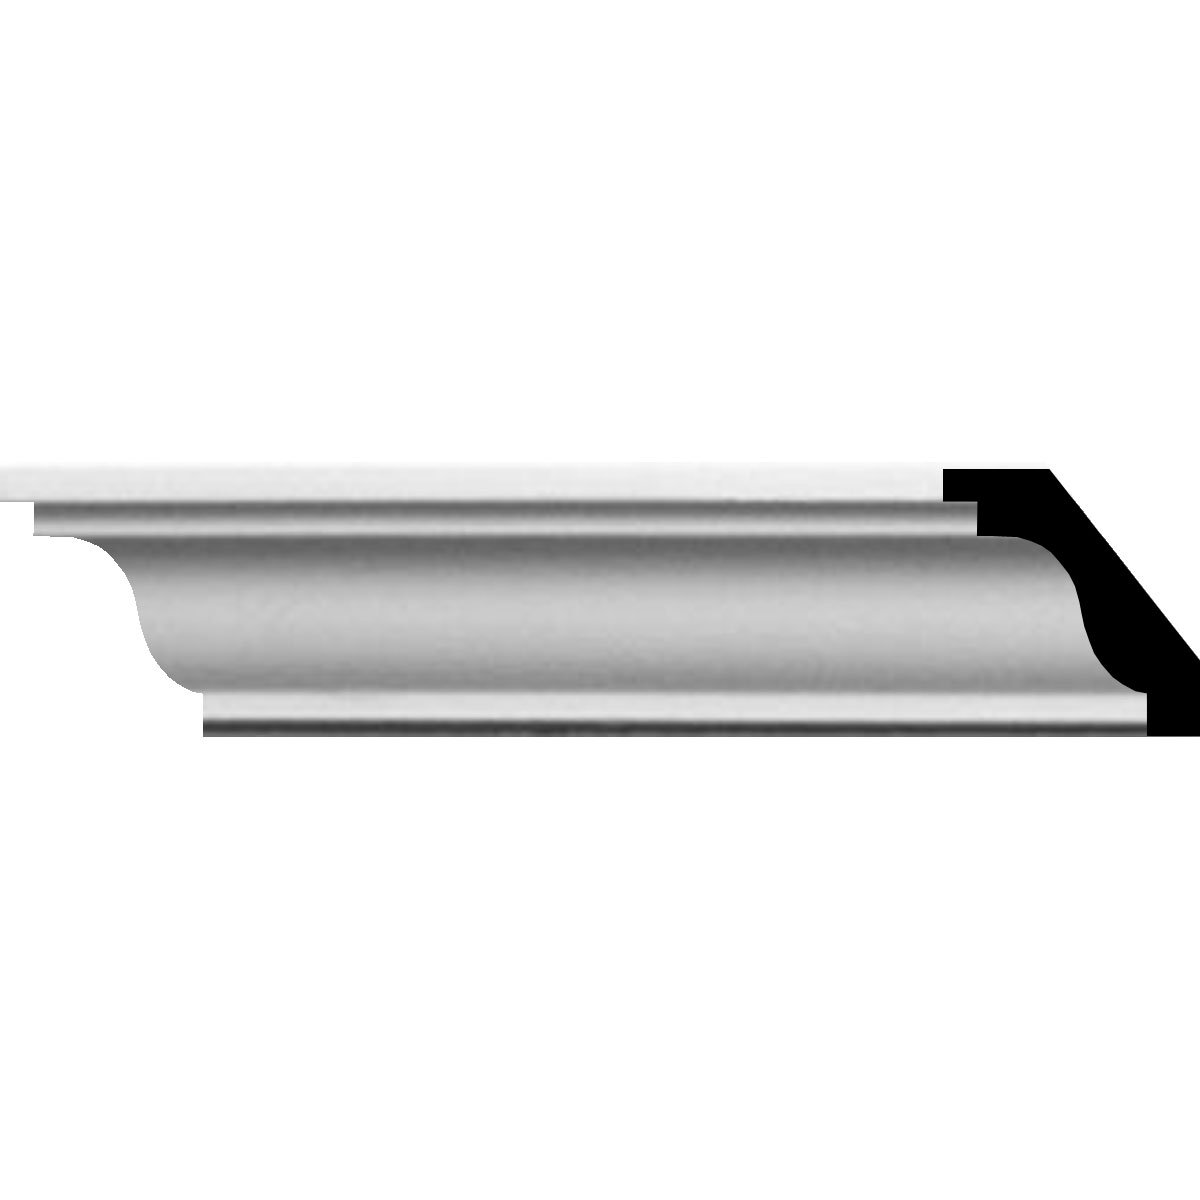 Ekena Millwork MLD01X01X01HI-CASE-12 1-1/4'' H x 1-1/4'' P x 1-3/4'' F x 94-1/2'' L Hillsborough Traditional Smooth Crown Molding (12-Pack)